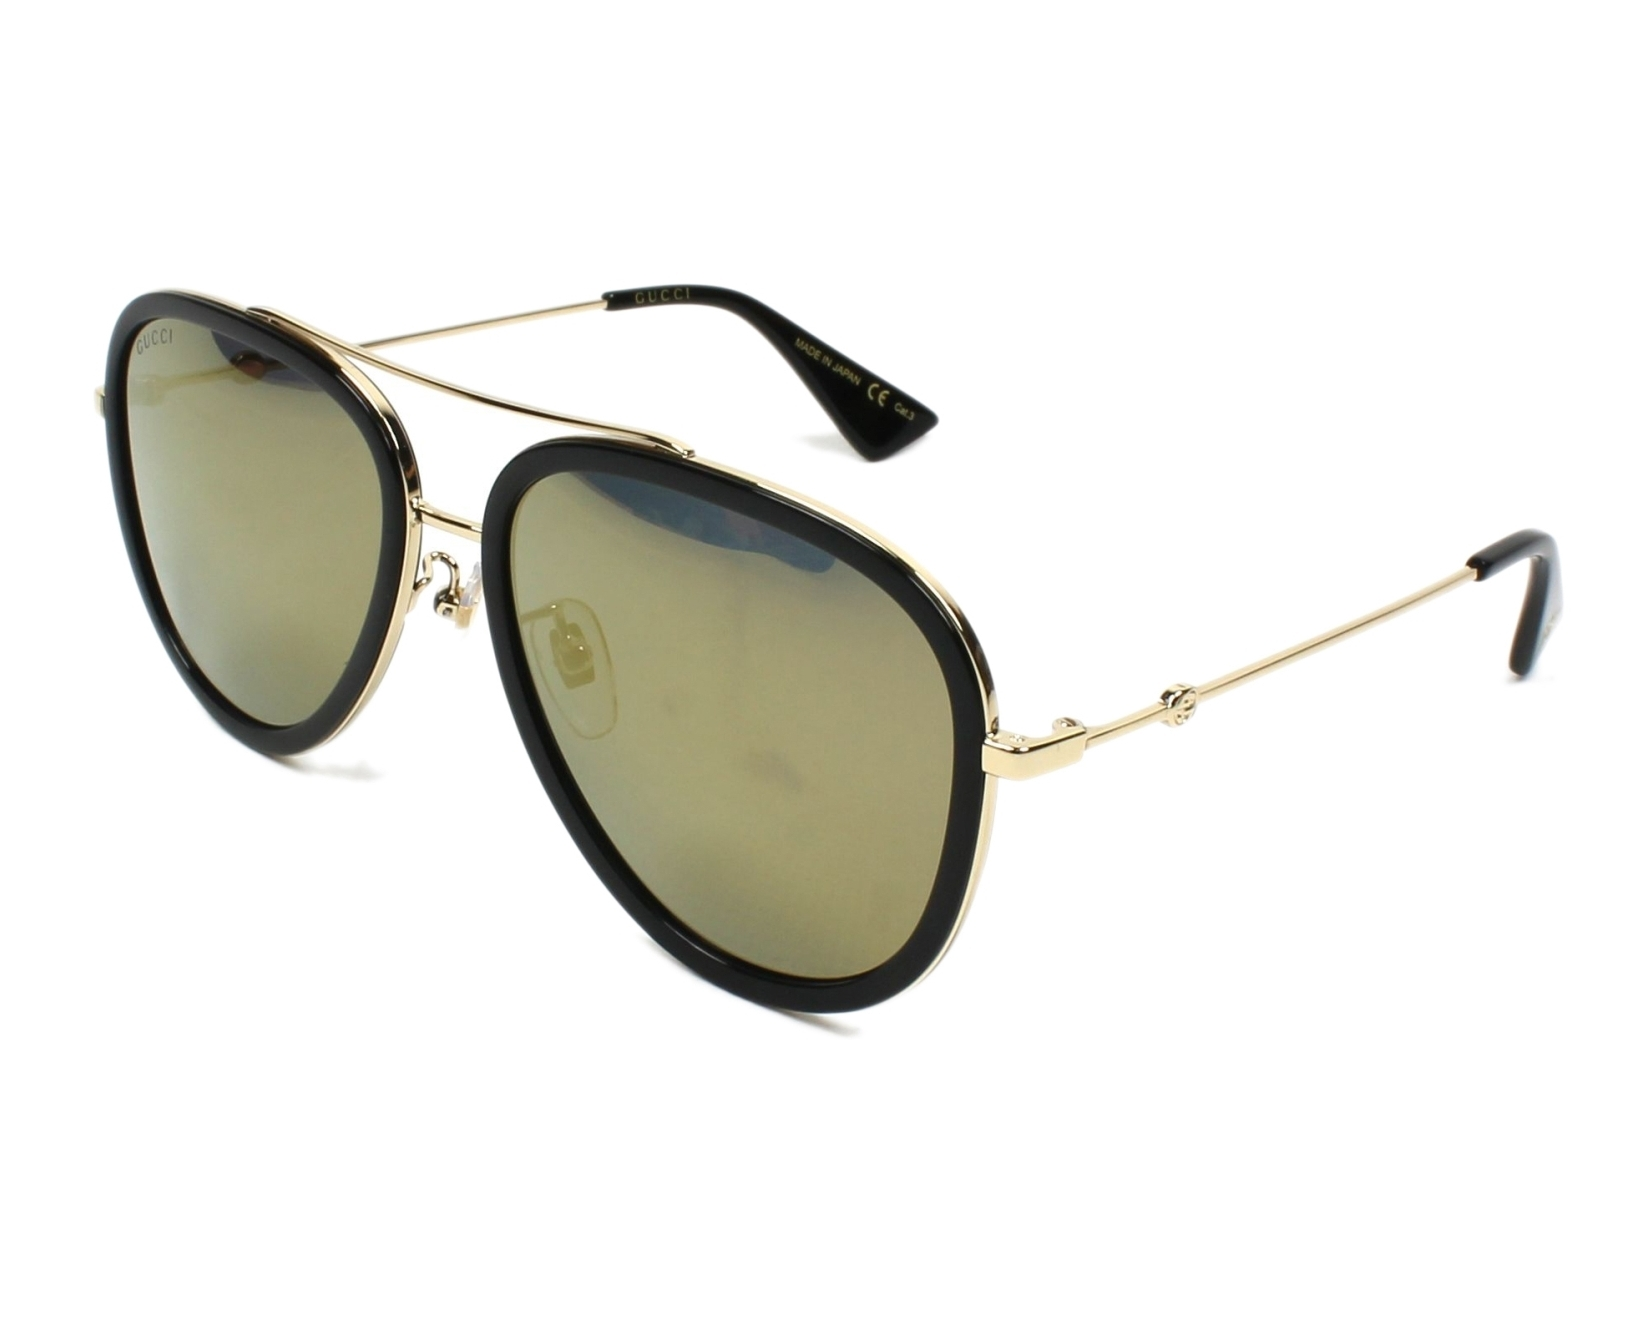 fe67b5dcf4 Sunglasses Gucci GG-0062-S 001 - Black Gold profile view